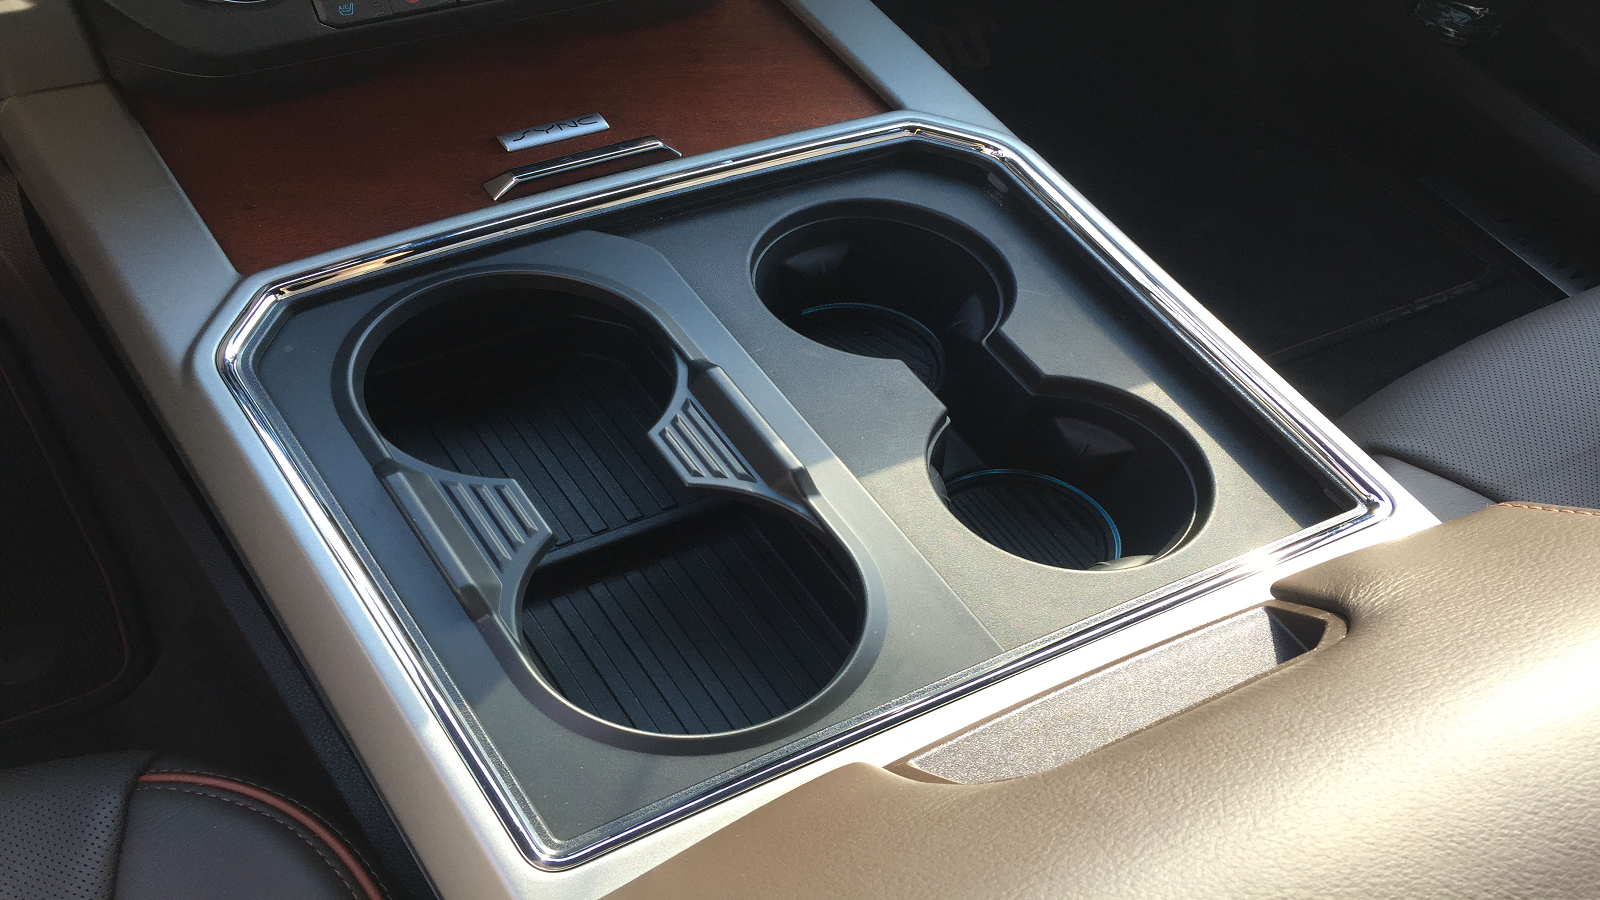 Removable cup holder inserts